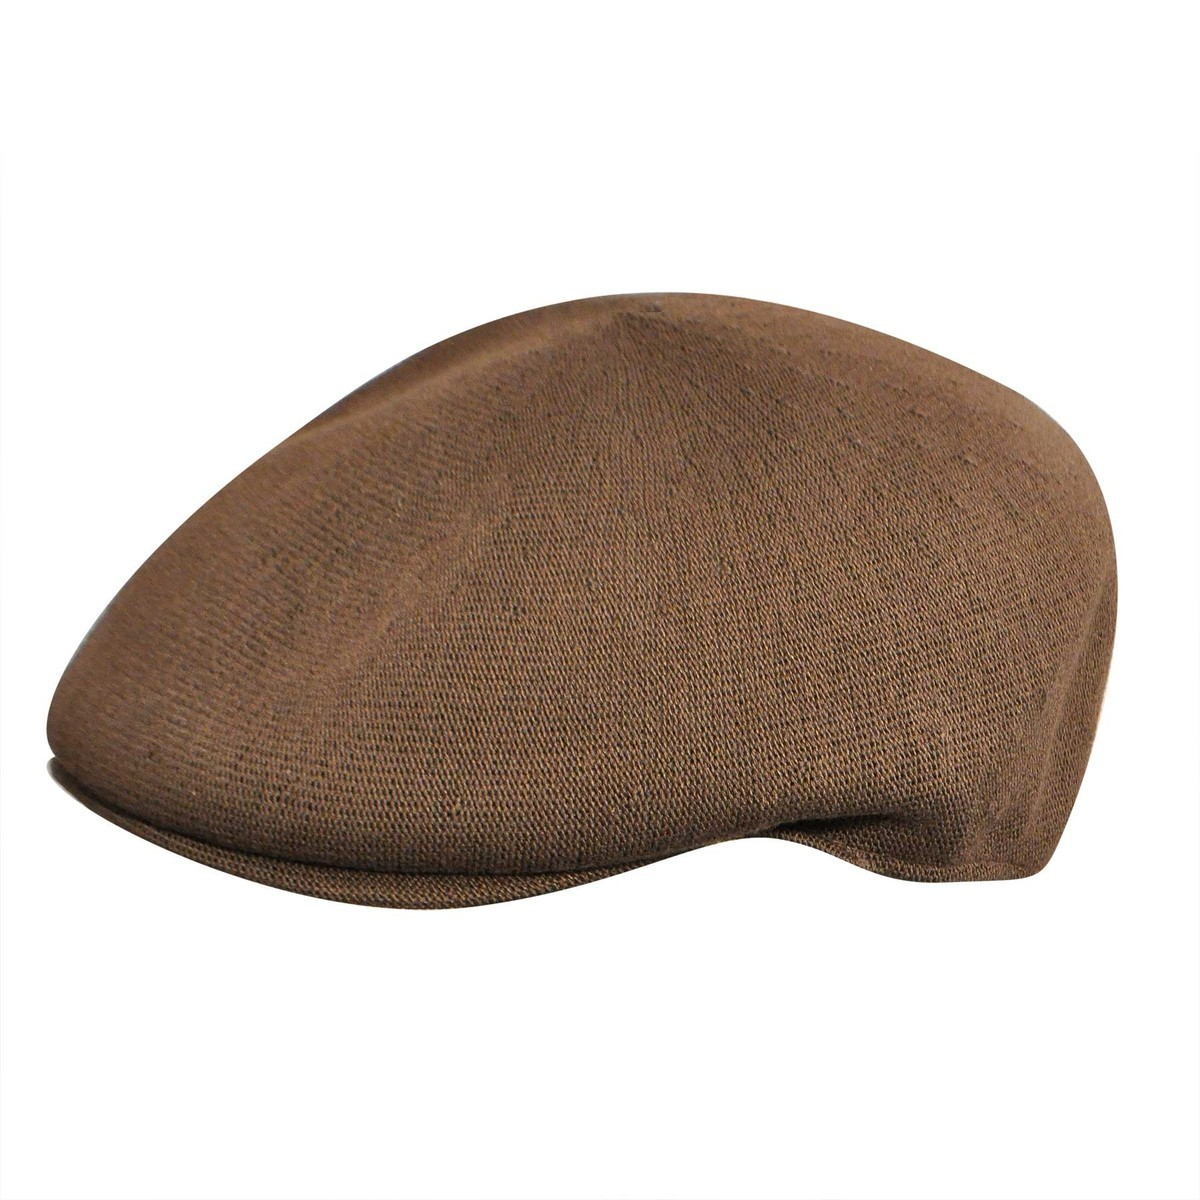 Kangol カンゴール Bamboo 575 Major Ivy Caps & Flat Caps 帽子 Major